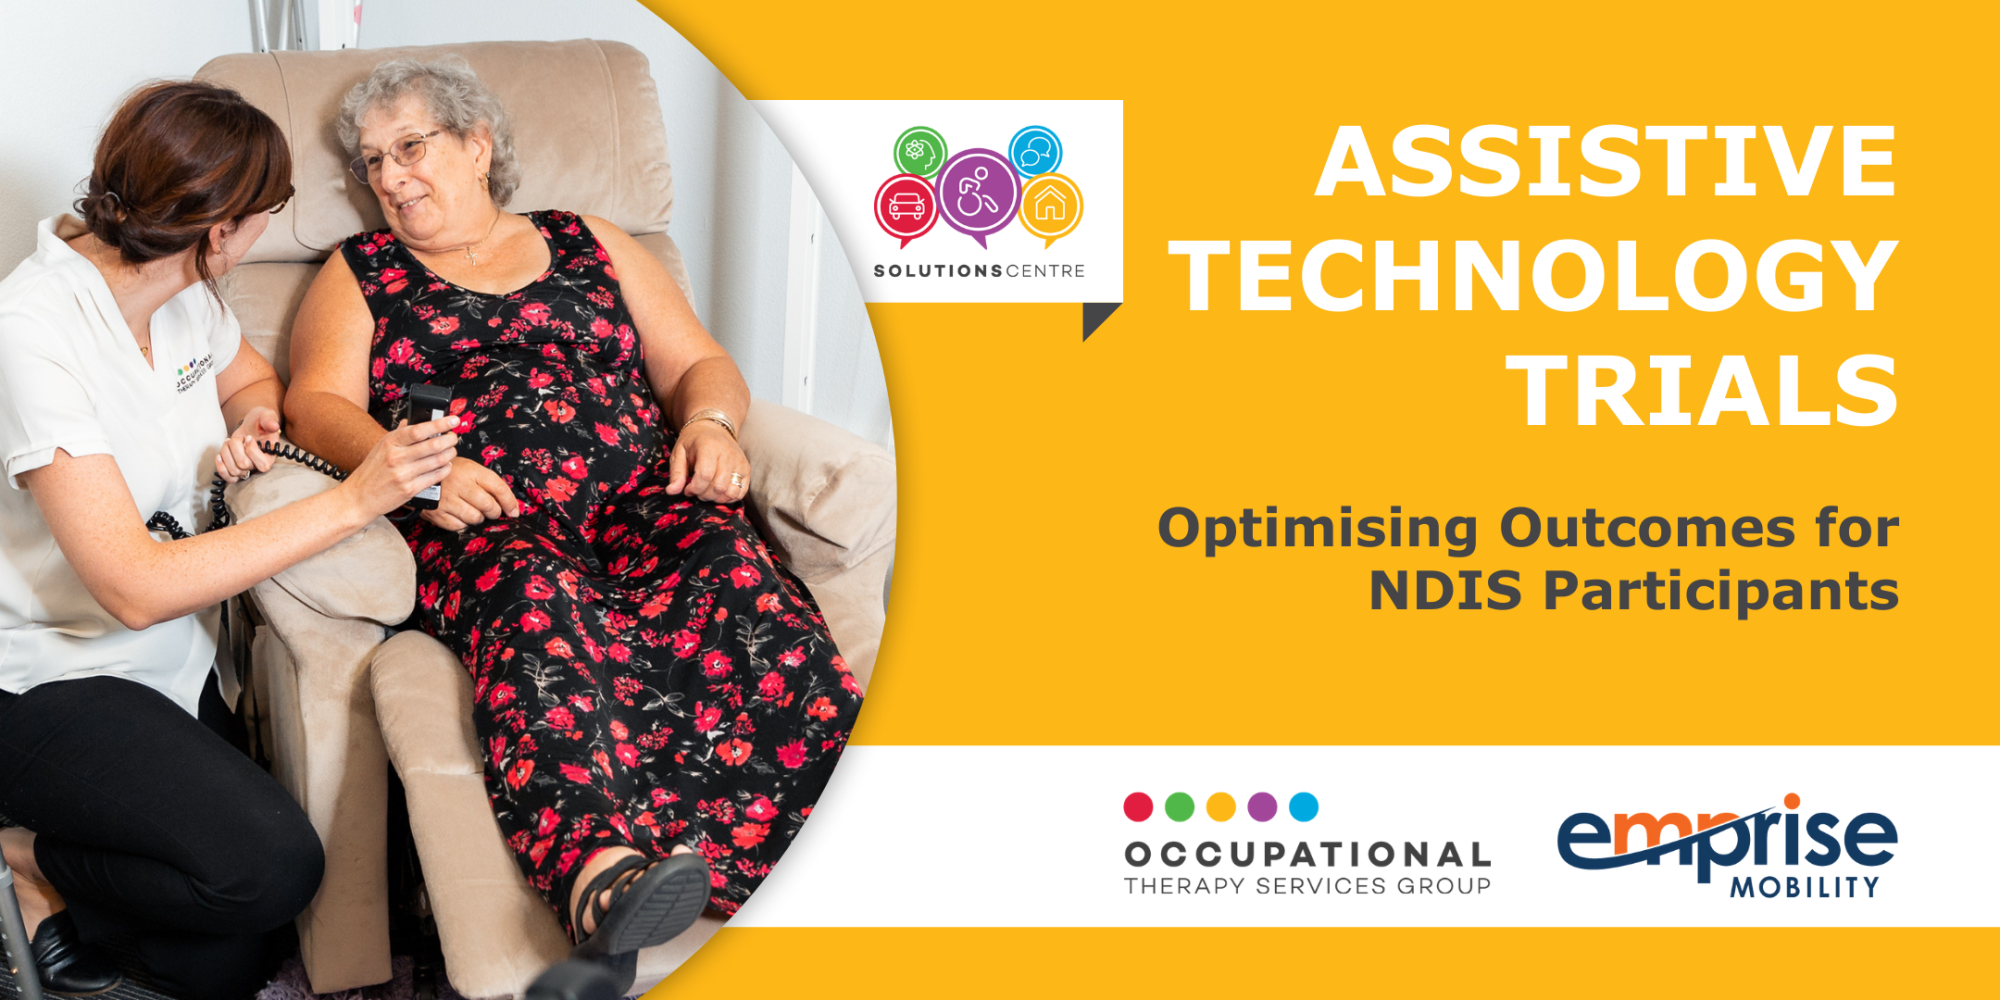 ASSISTIVE TECHNOLOGY TRIALS